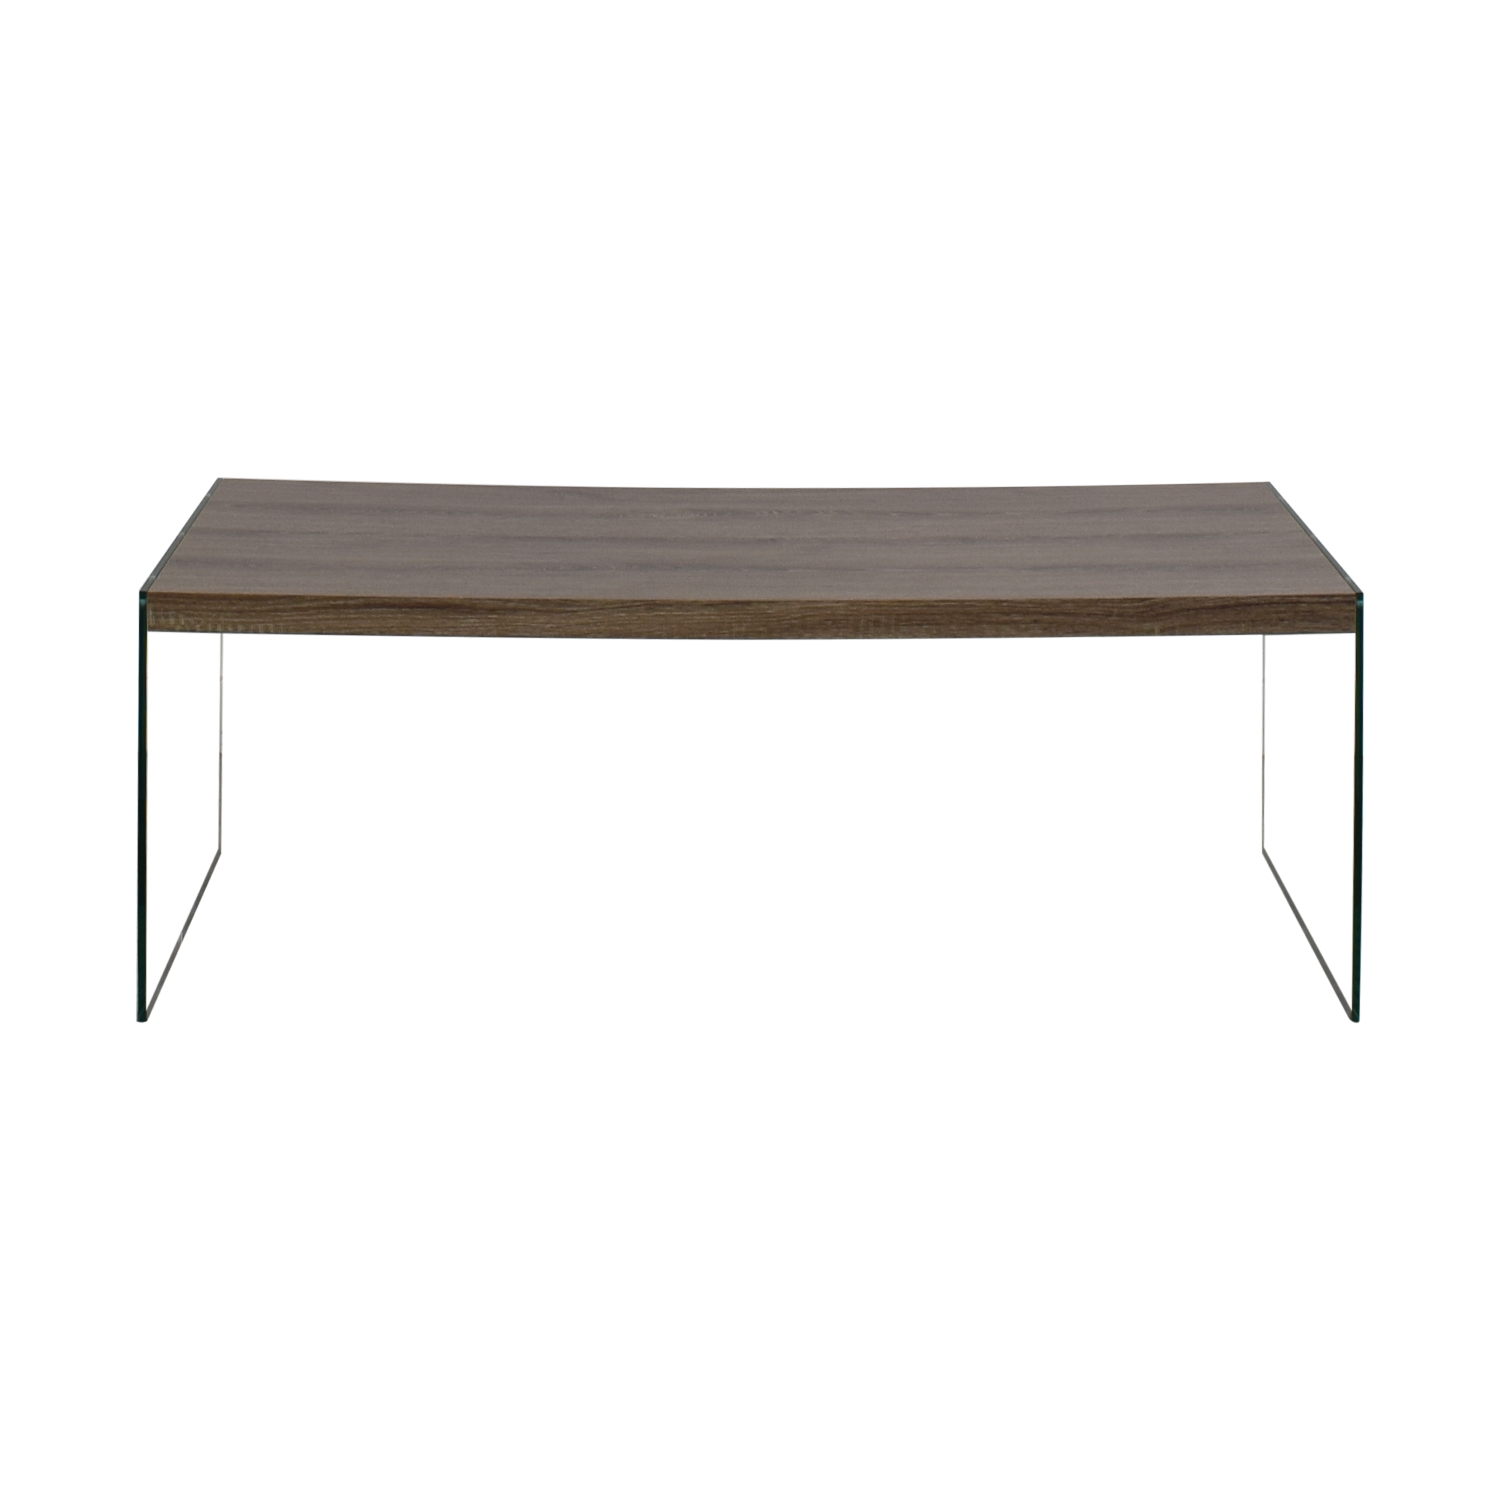 Monarch Specialties Monarch Specialties Grey Rustic Wood and Glass Coffee Table second hand